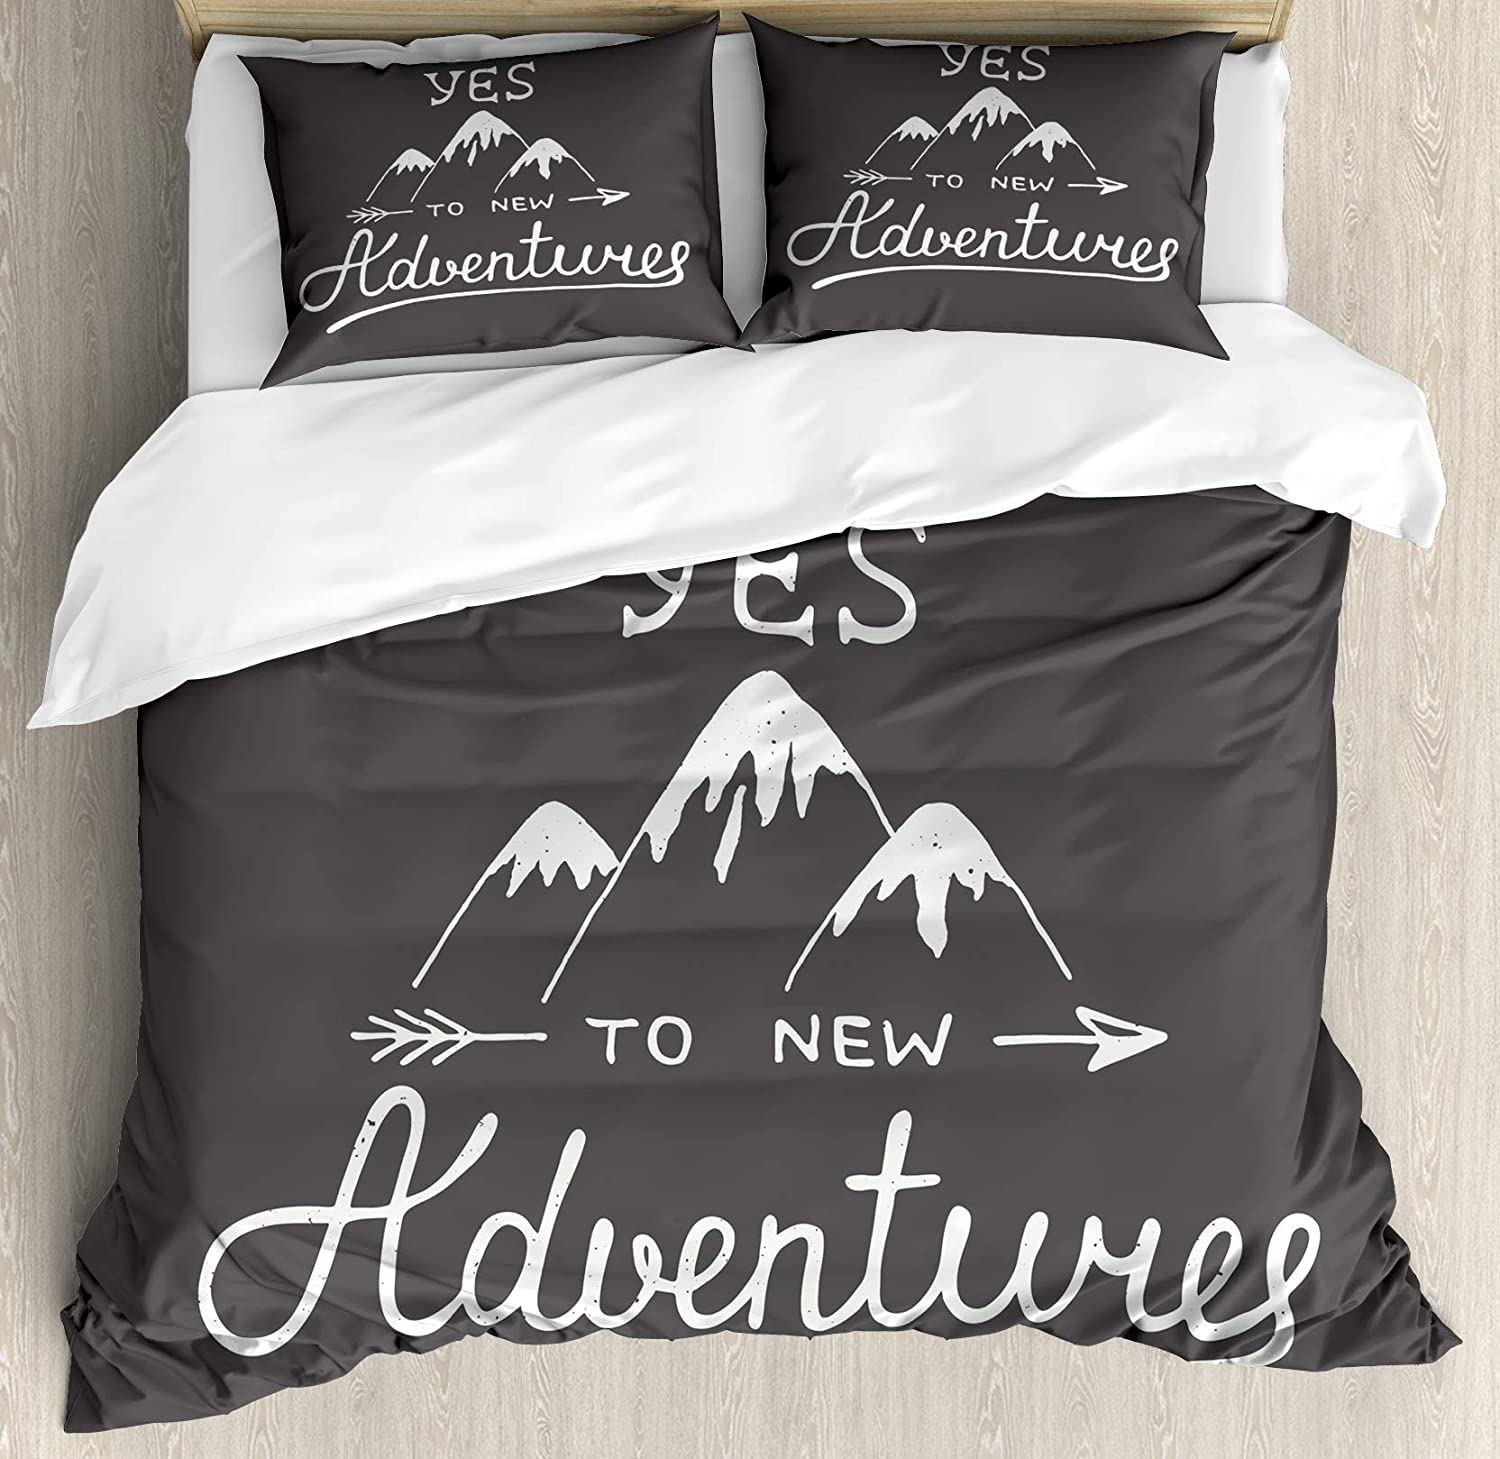 Ambesonne Adventure Duvet Cover Set, Say Yes to New Adventures Typographic Words with Scribble Mountains, Decorative 3 Piece Bedding Set with 2 Pillow Shams, Queen Size, Charcoal Grey